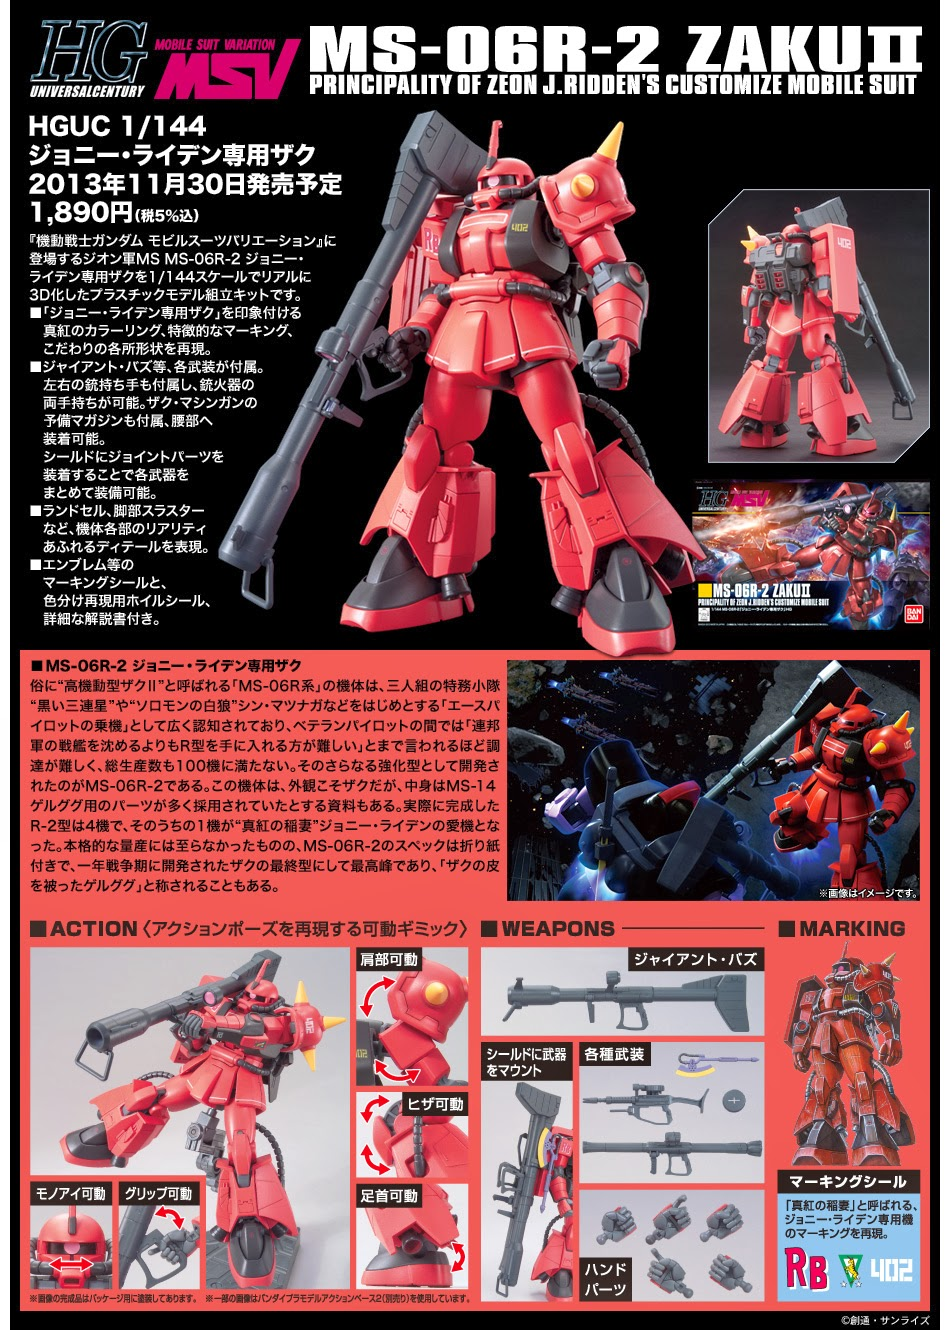 Image result for HGUC 1/144 MS-06R-2 Zaku Johnny Ridden Custom